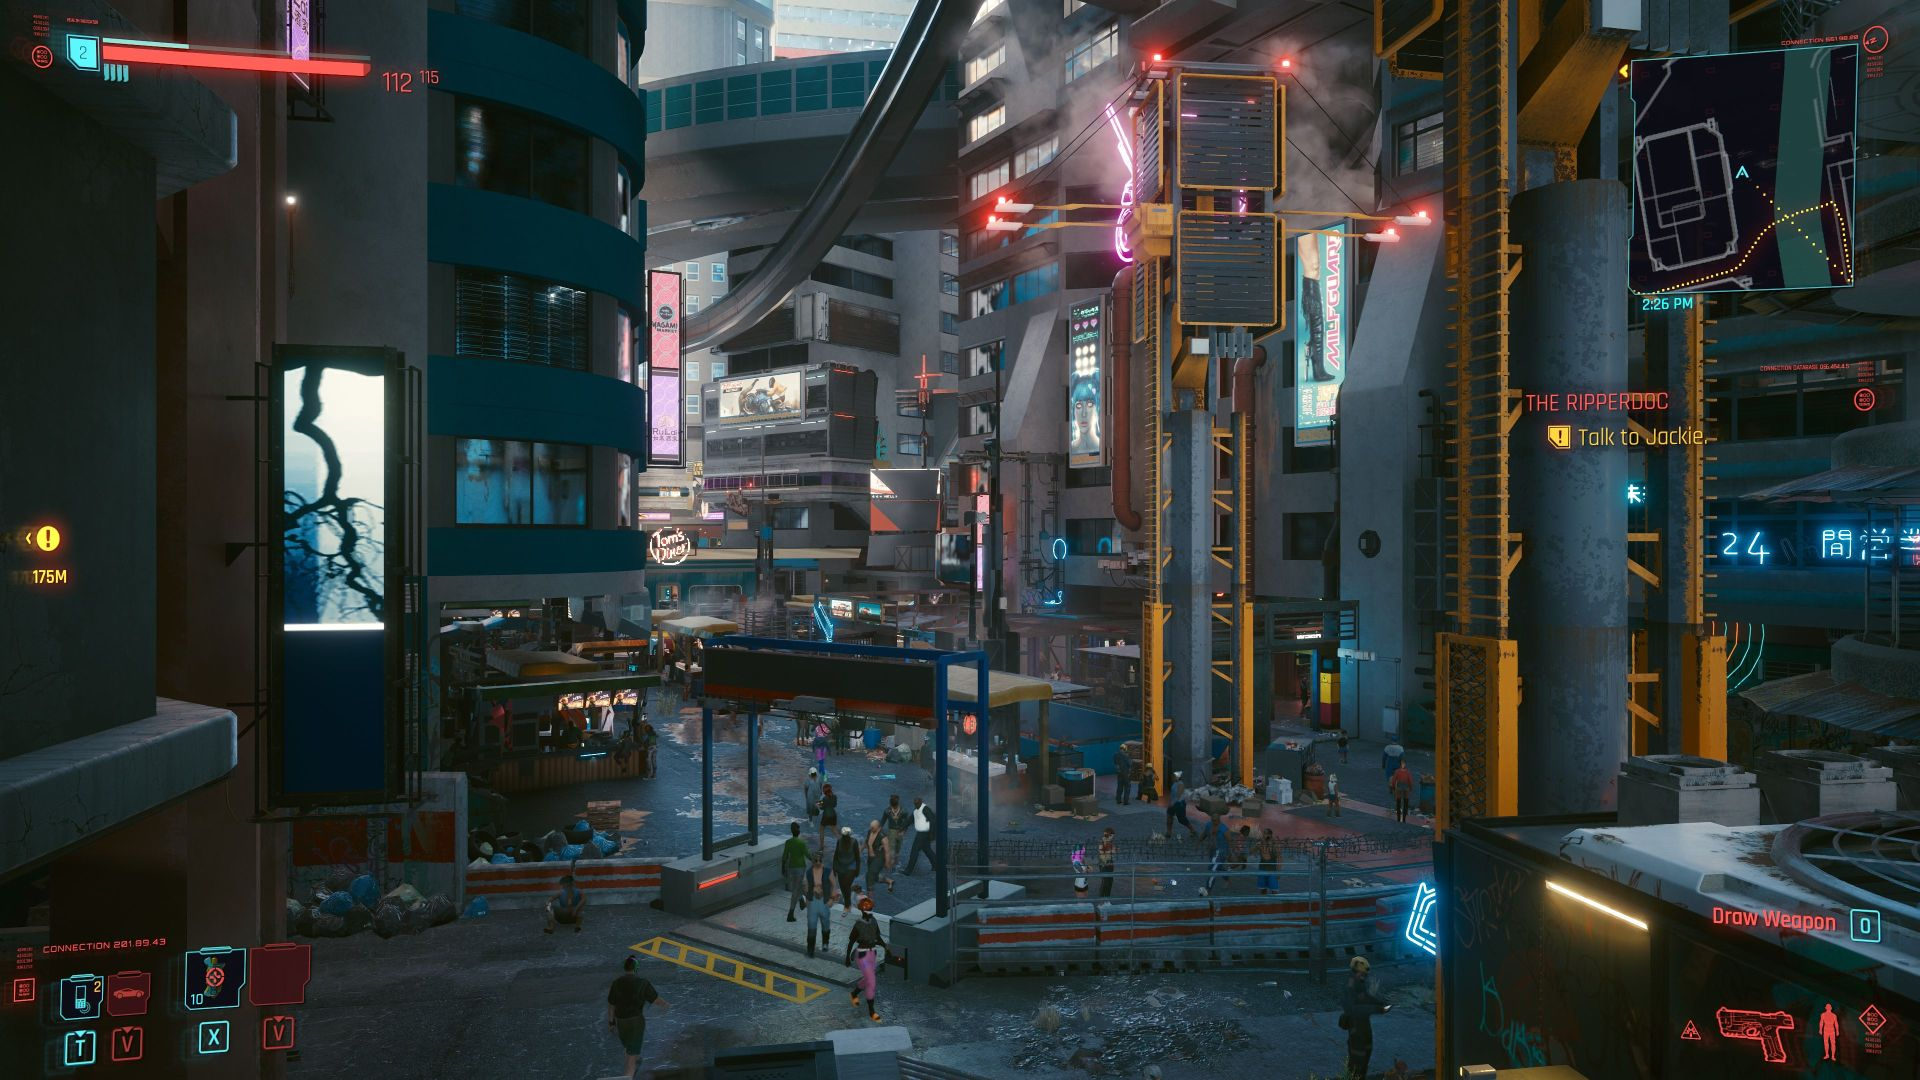 A shot of Cyberpunk 2077, showing a street scene with more detail than you'd generally see